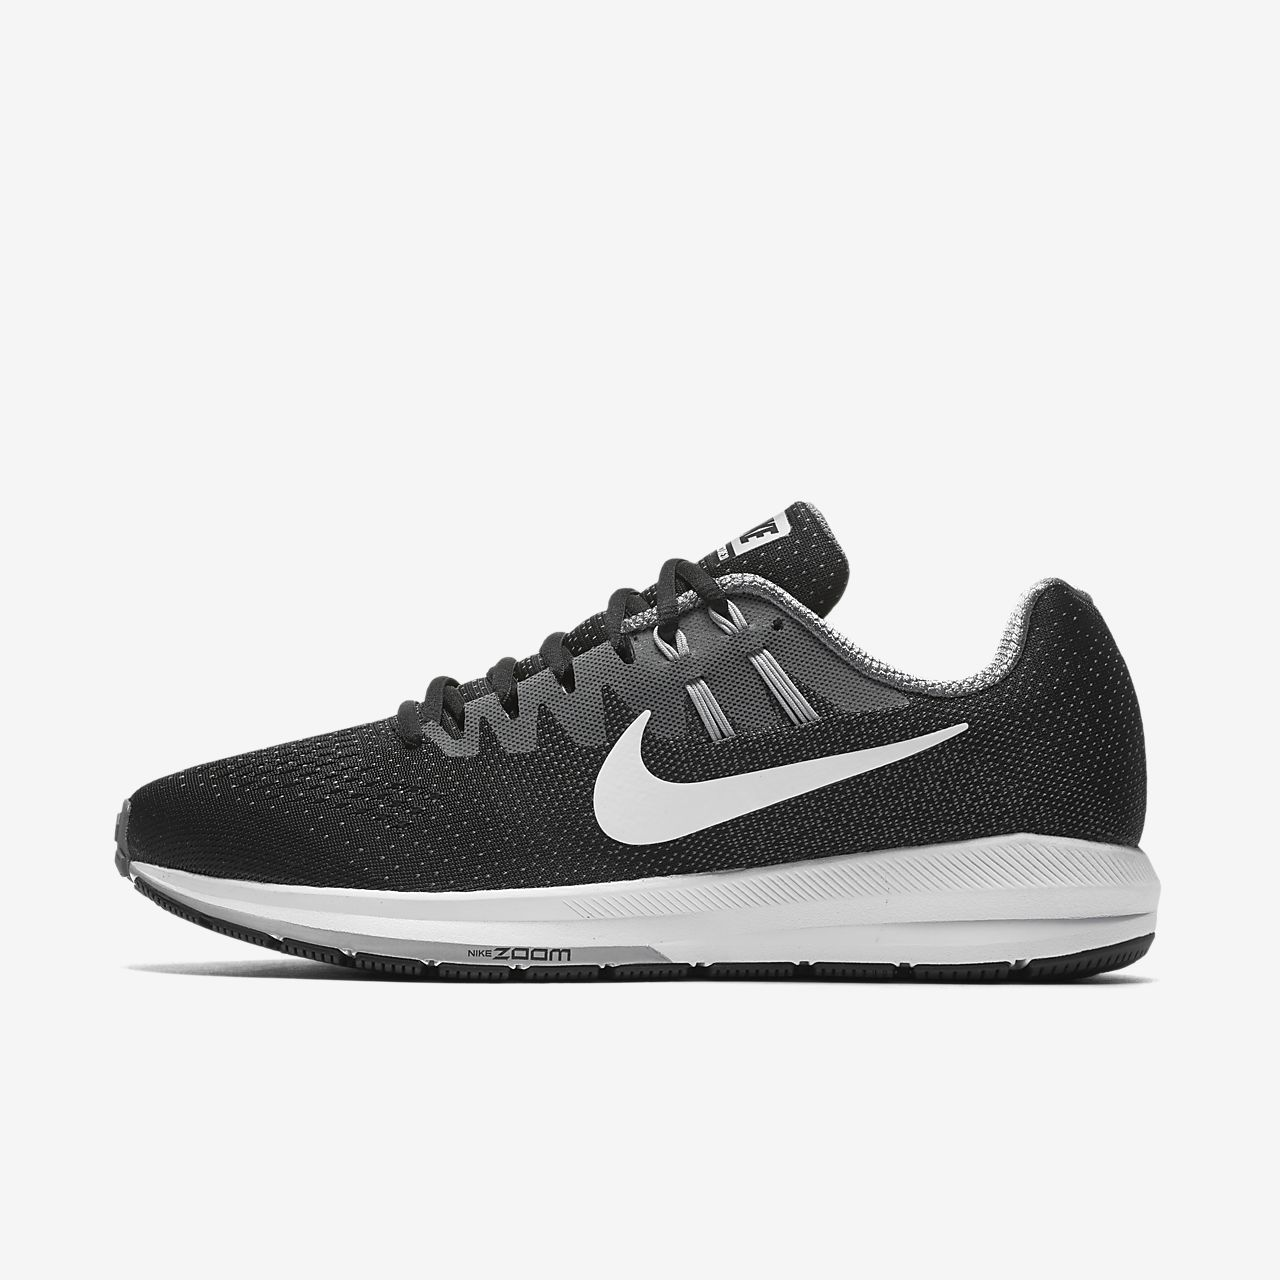 ... new zealand scarpa da running nike air zoom structure 20 uomo f94e7  6b7df 53bcbd877c6